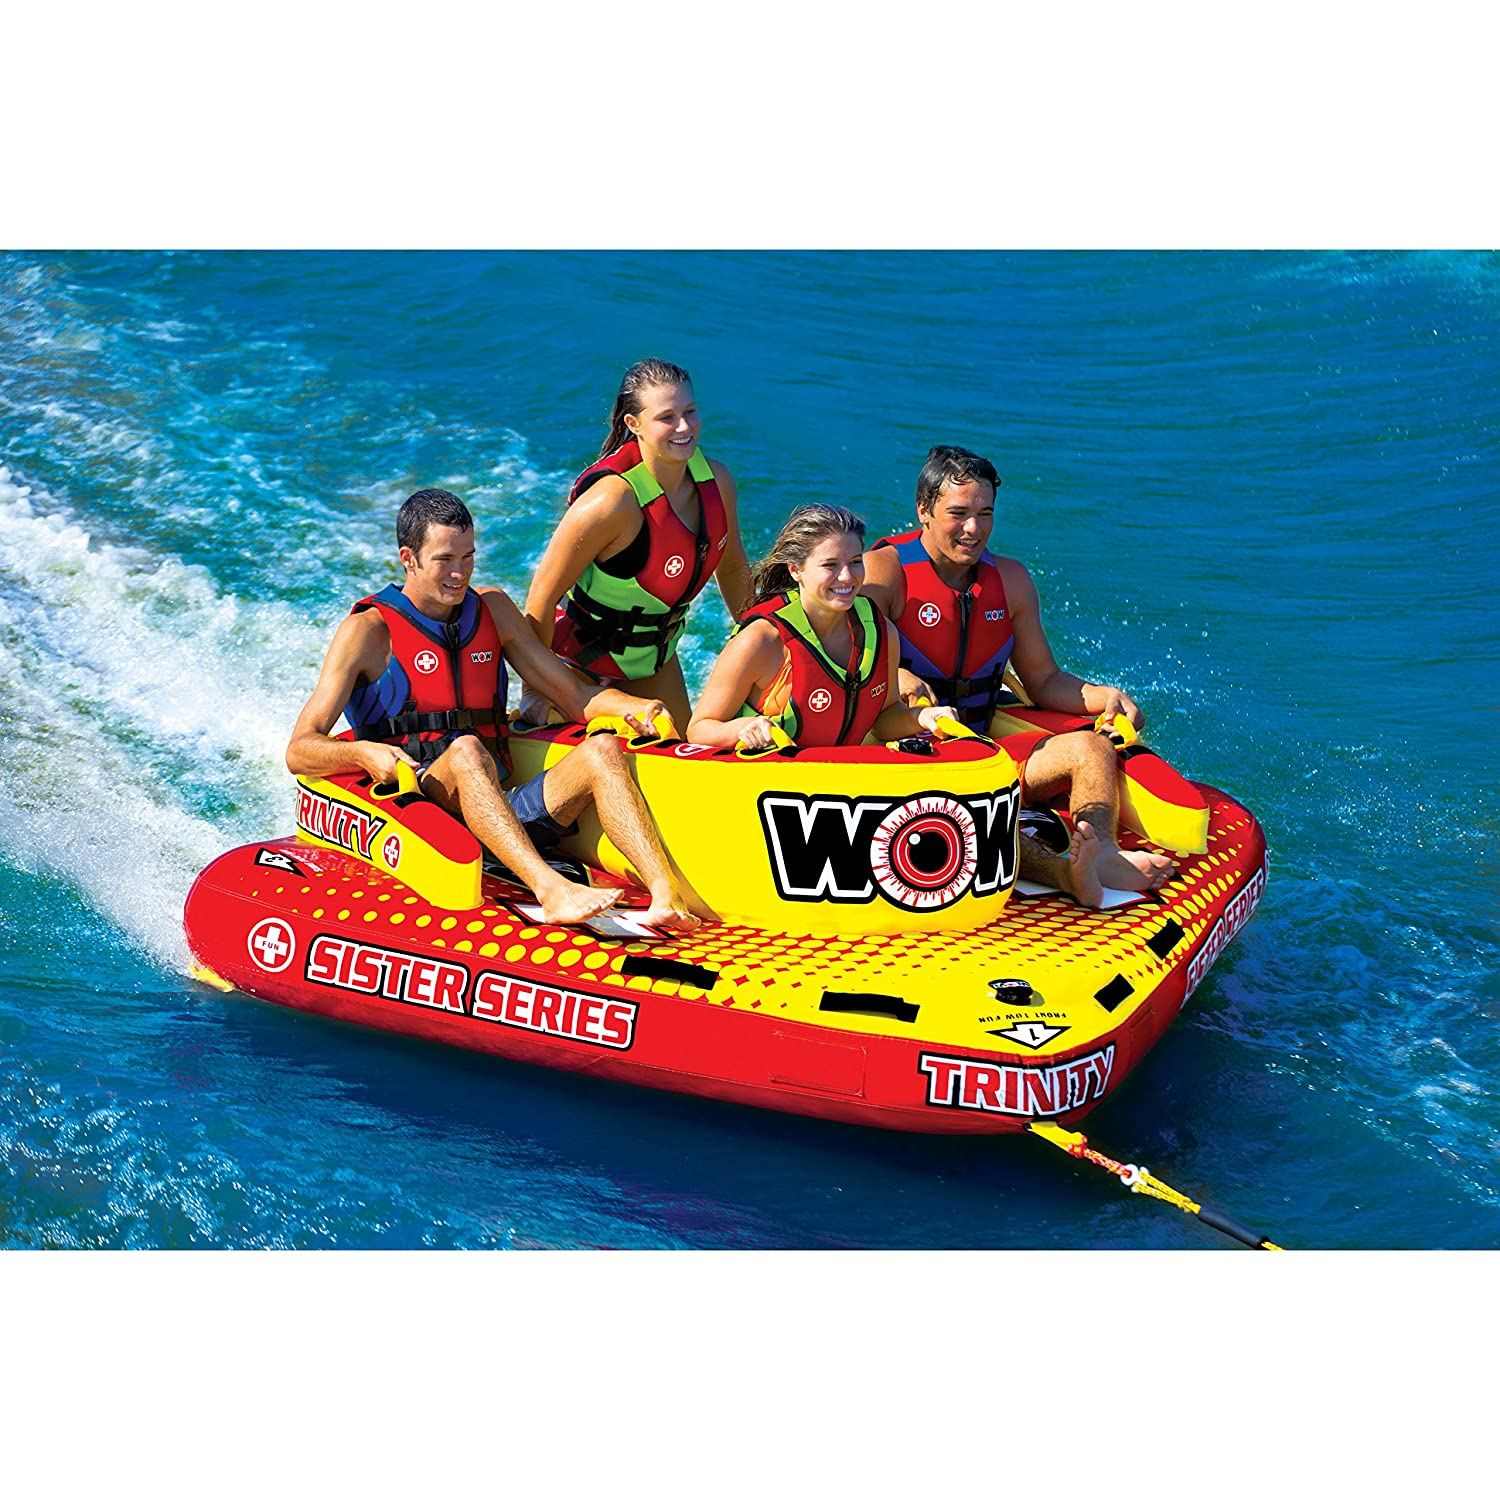 Amazon.com : WOW World of Watersports, 15-1080, Trinity Sister Series Face to Face